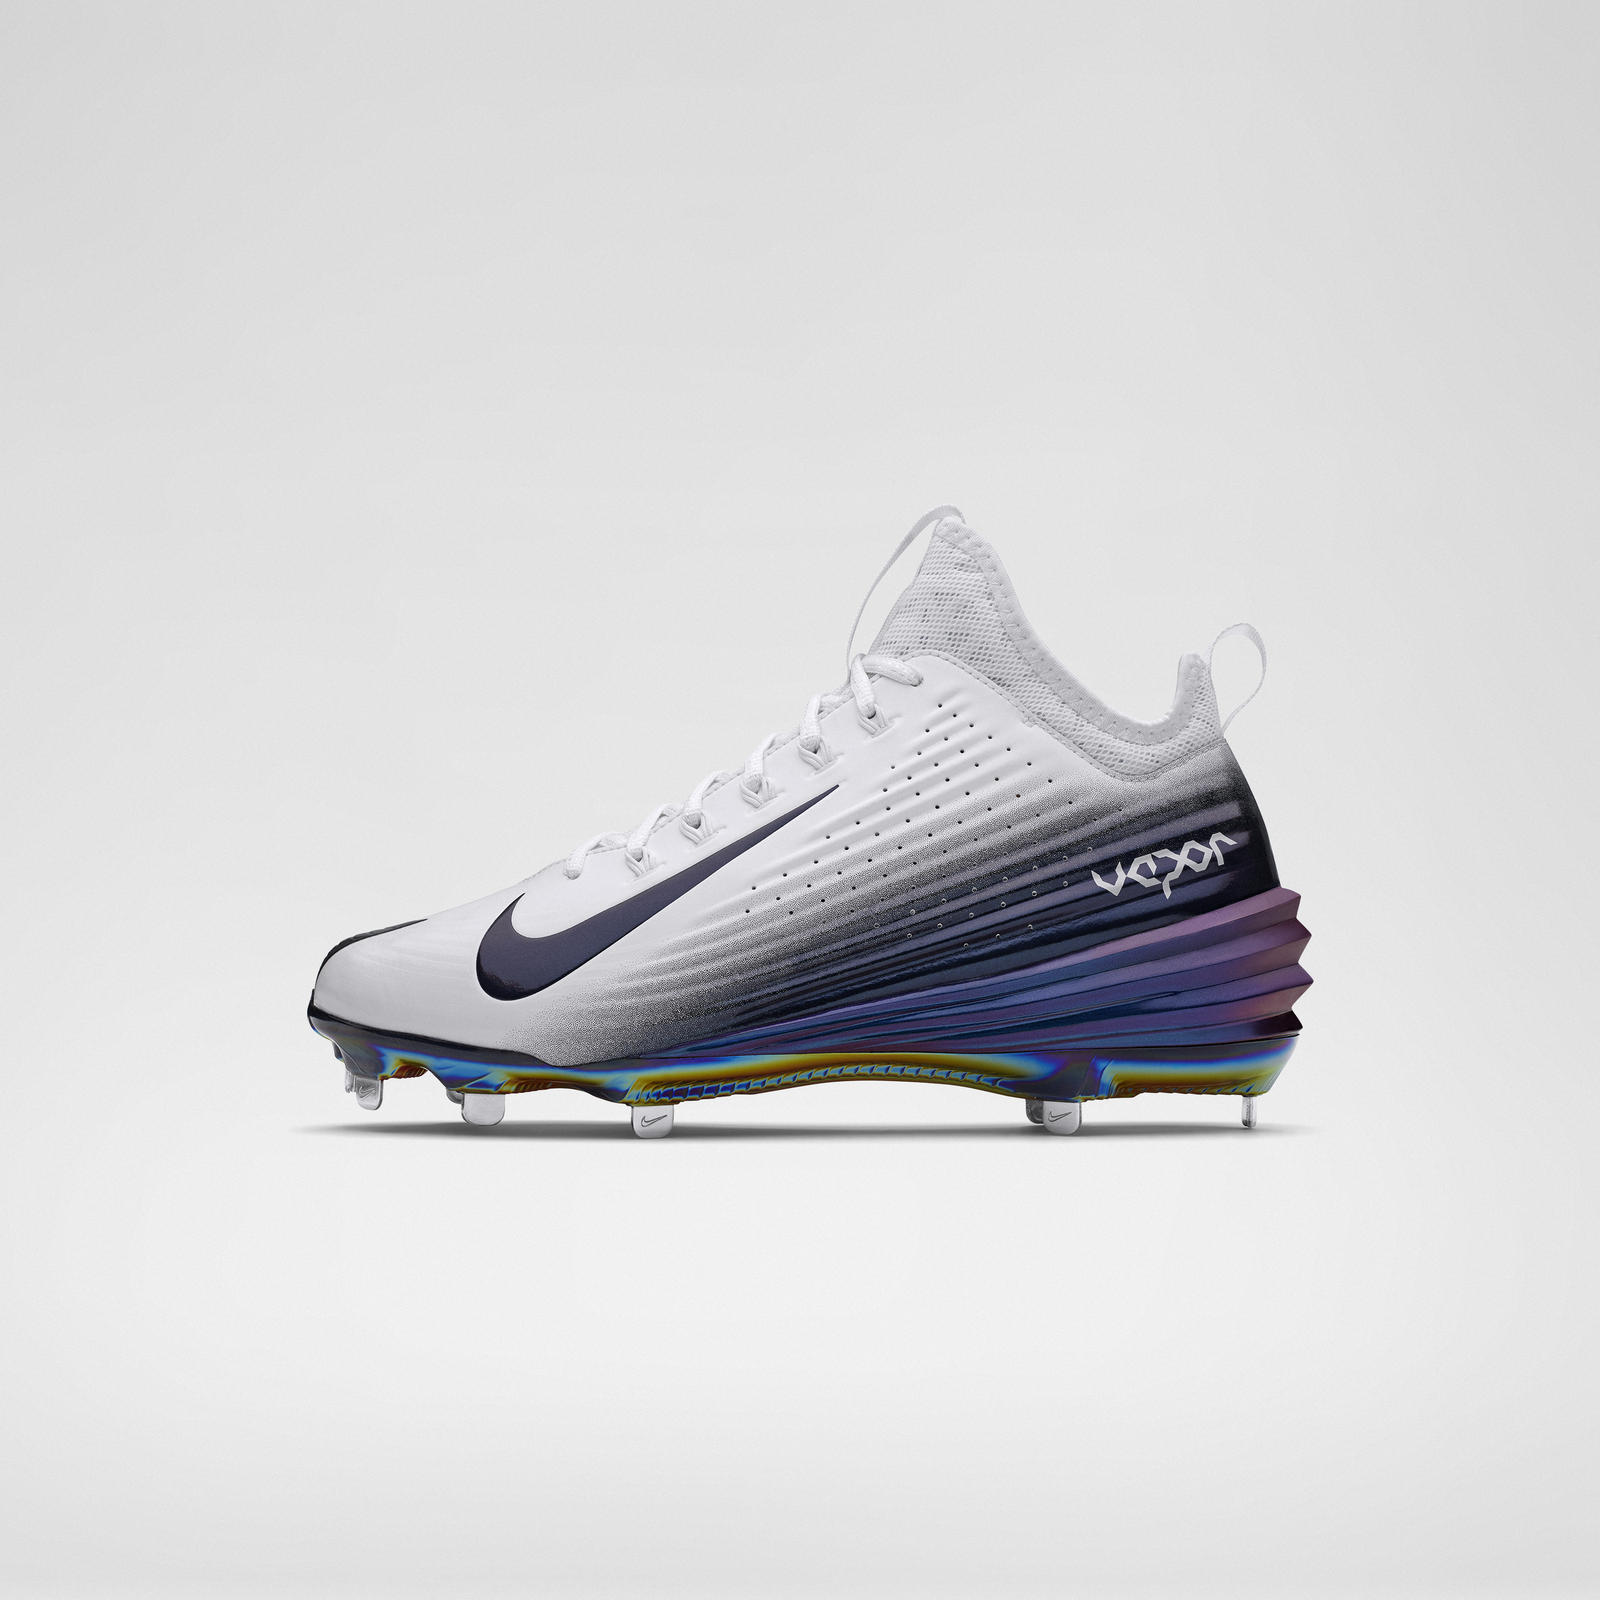 new concept ee640 d00f2 Mobile Gallery Image ... New Nike Lunar Vapor Mike Trout Metal Baseball  Cleats Black ...